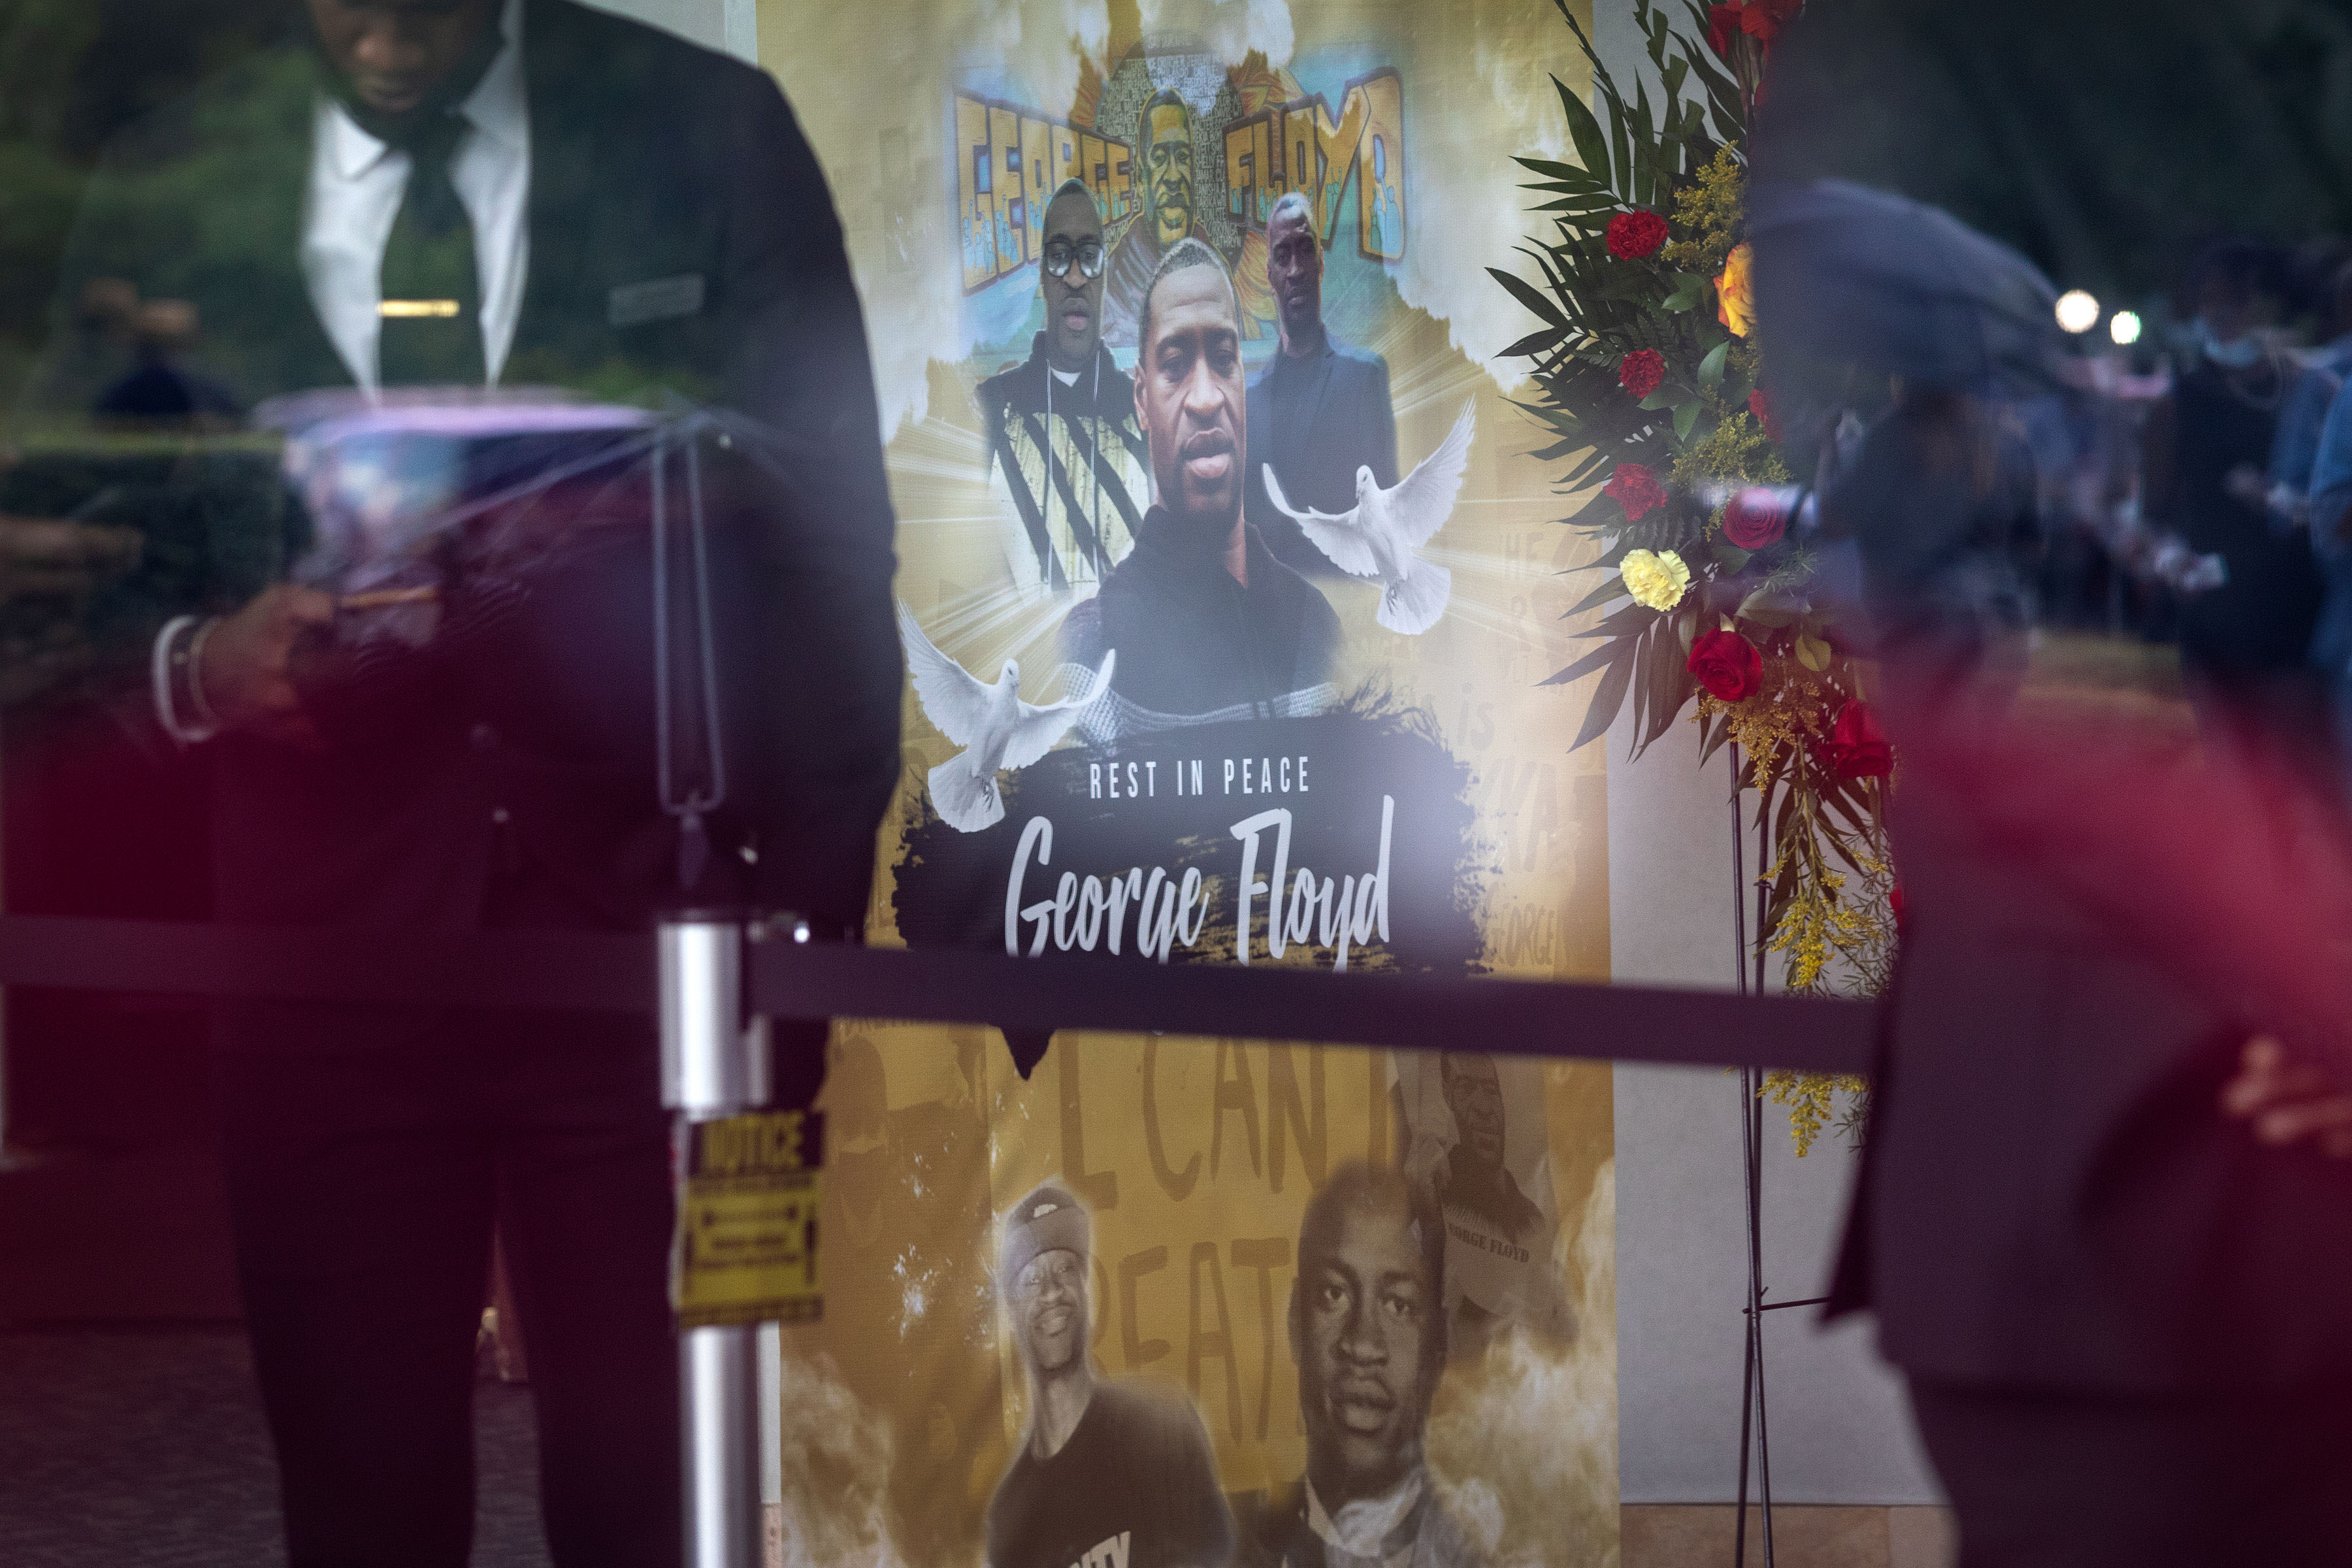 People gather at the final public memorial for George Floyd at the Fountain of Praise church in Houston on June 8.